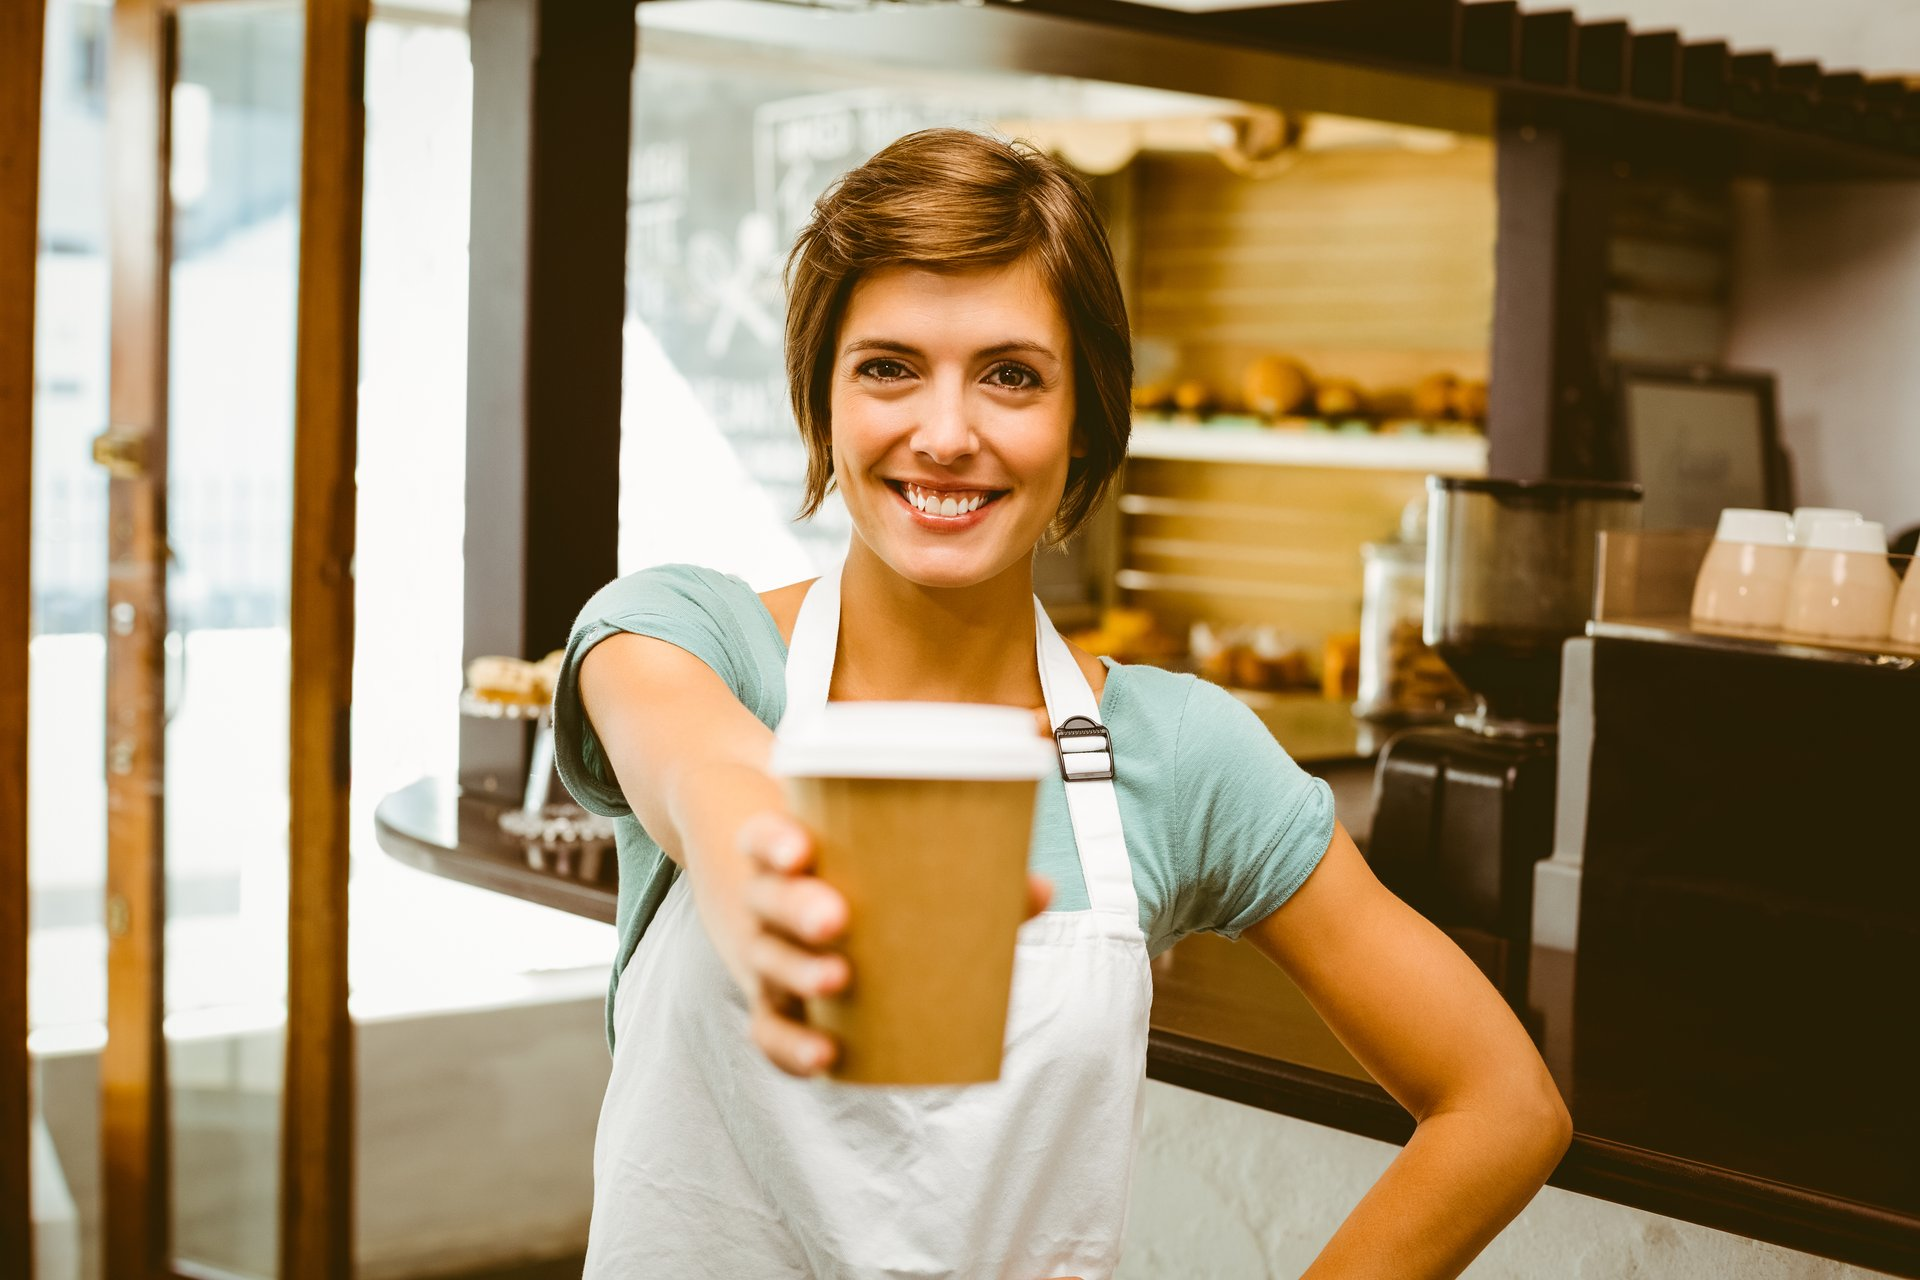 Barista holding coffee